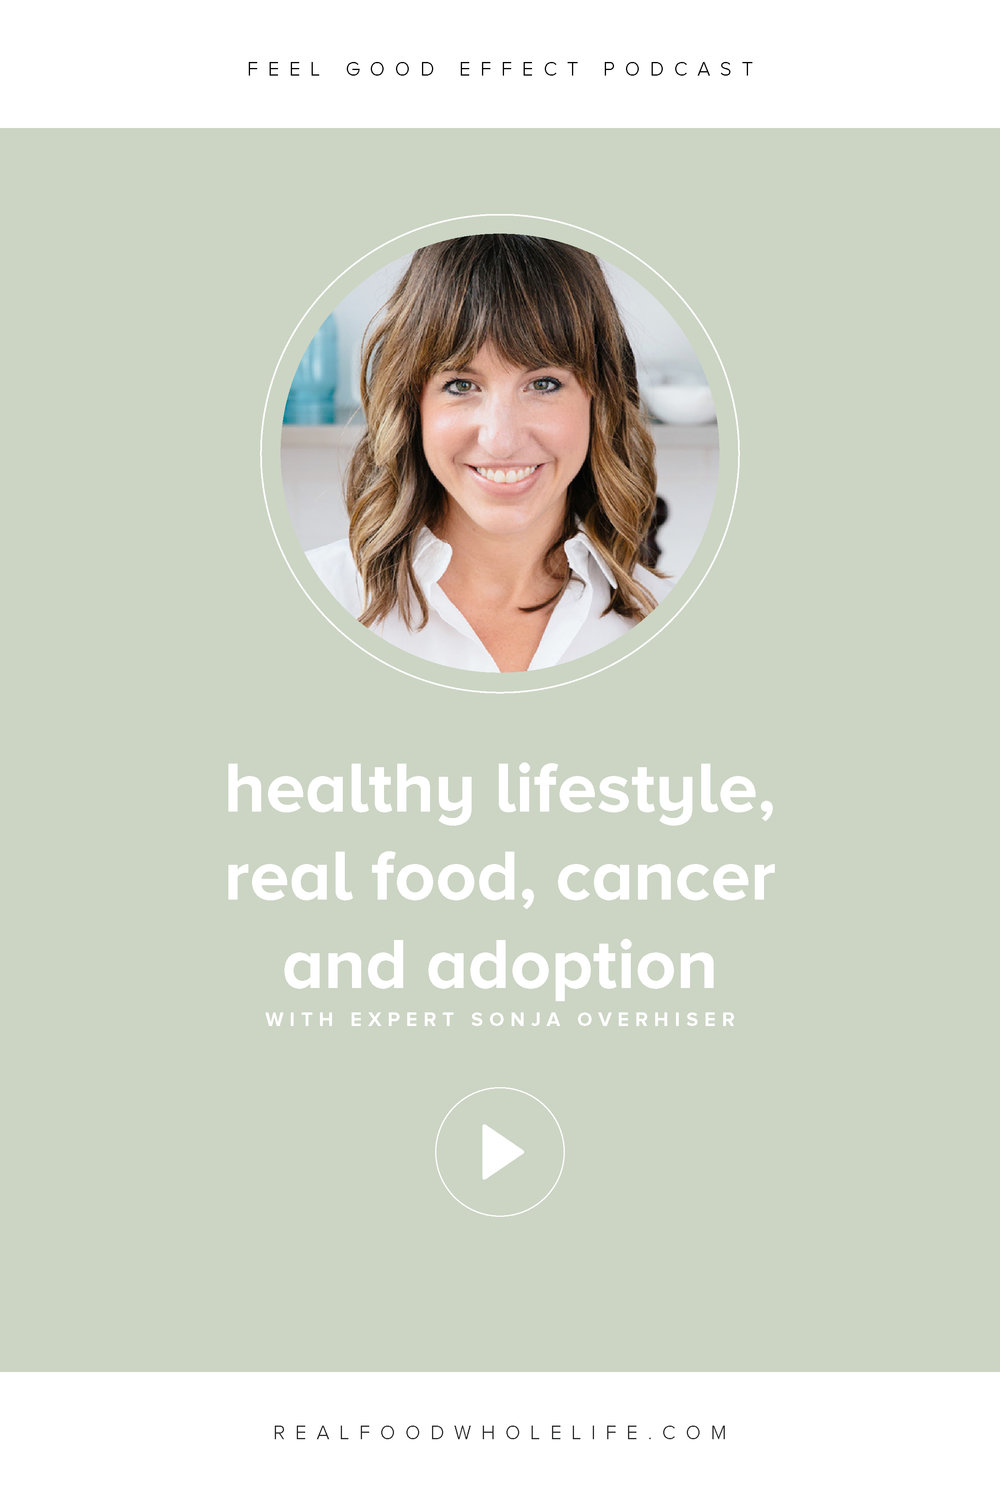 Healthy Lifestyle, Real Food, Cancer and Adoption with Sonja Overhiser